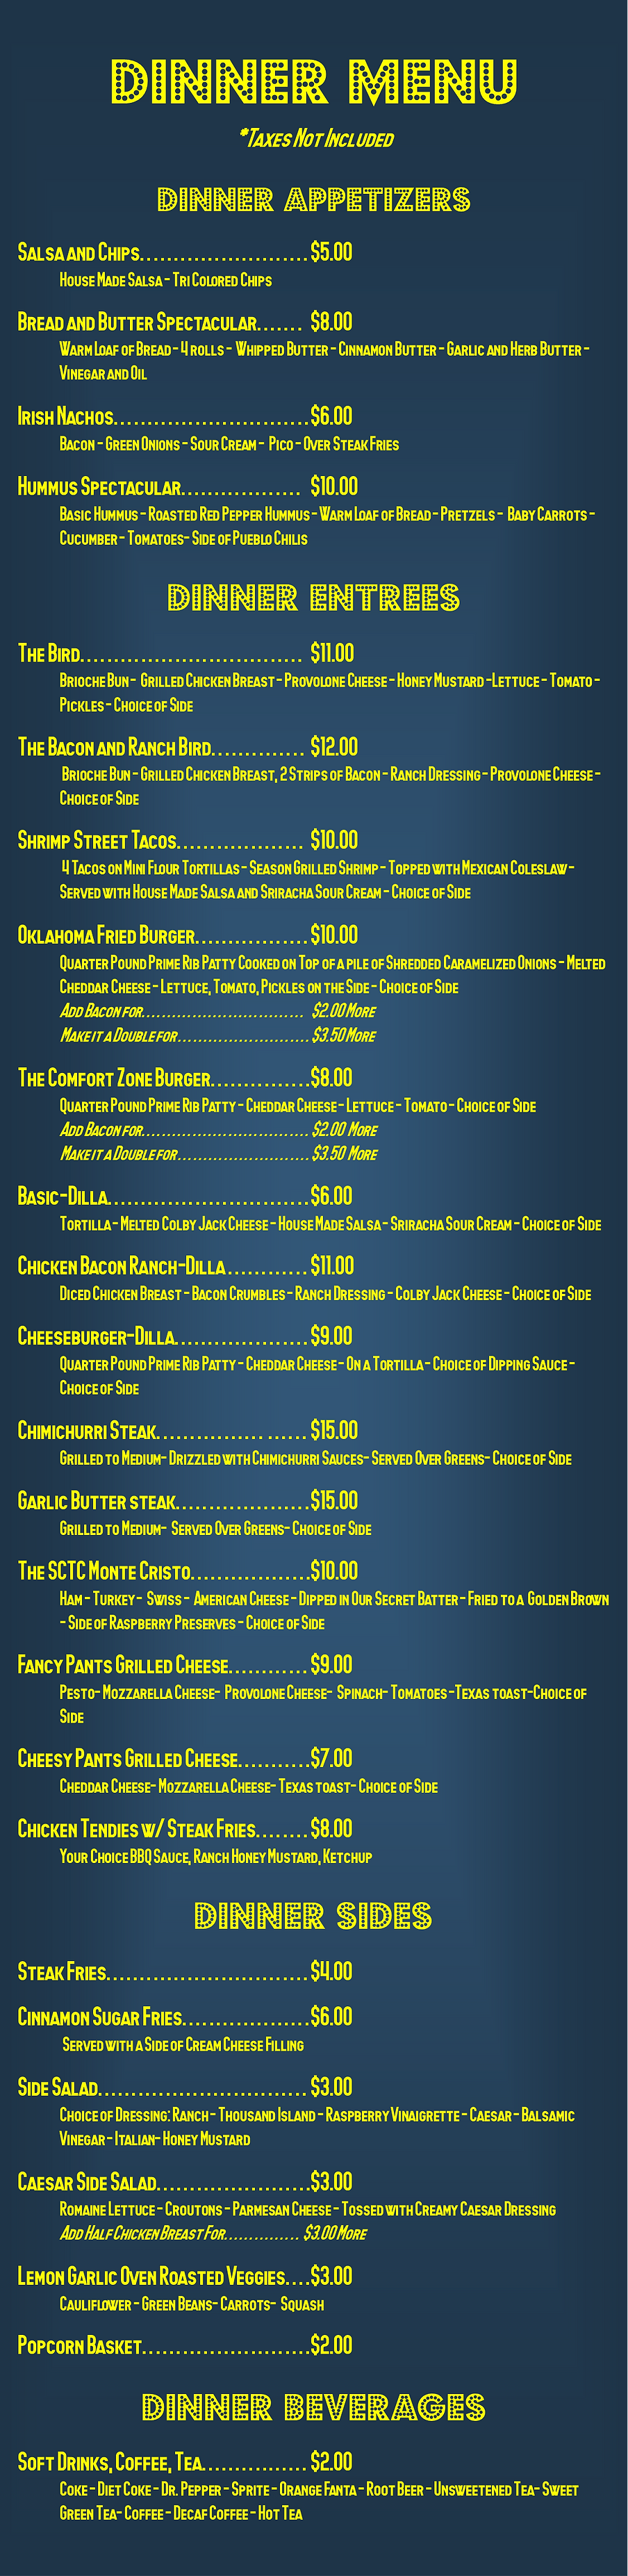 Dinner Menu Website 8-23.png